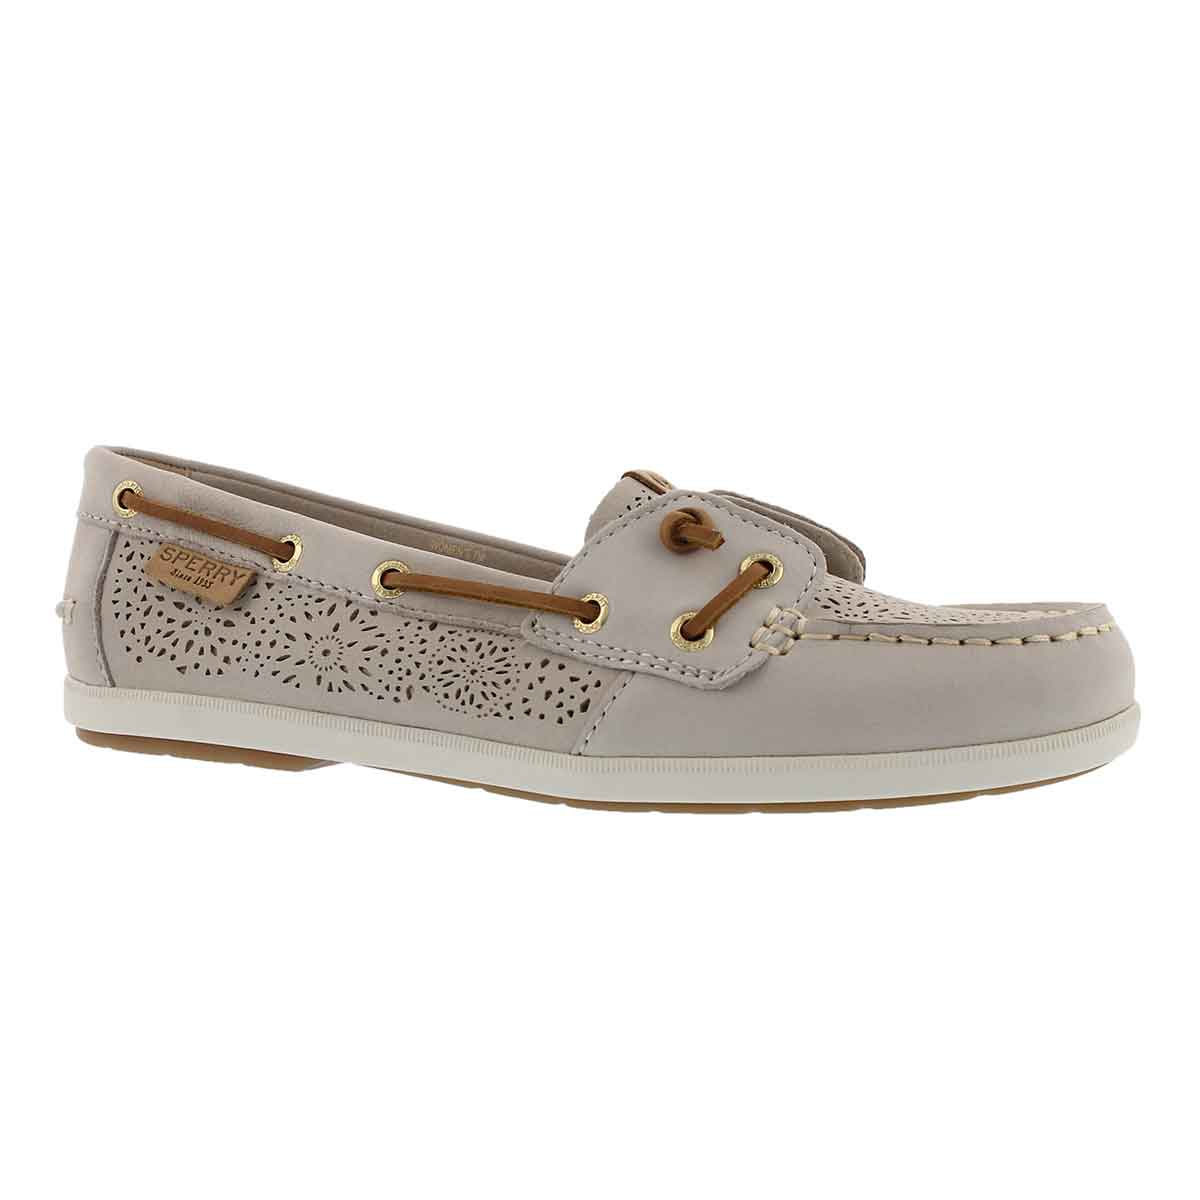 Women's COIL IVY GEO PERFORATED ivory boat shoes